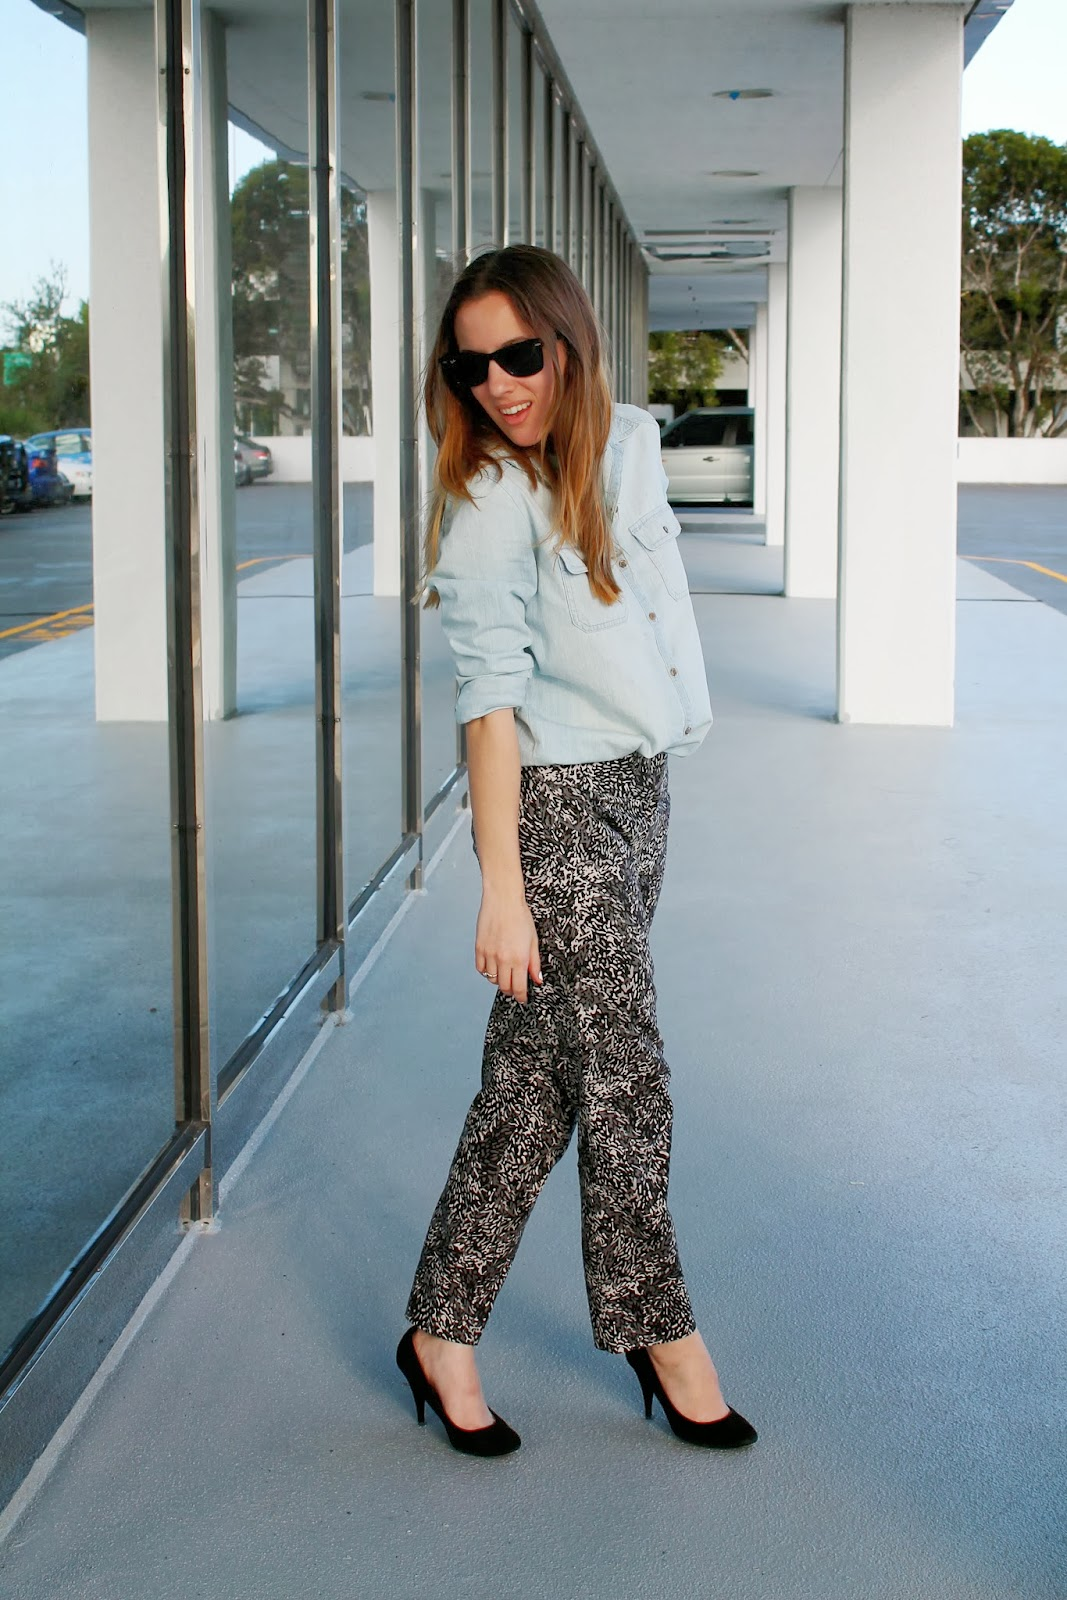 chambray, Nordstrom, LOFT, Steve Madden, BCBGeneration, edgy, preppy, southern, Miami fashion blog, fashion blog, what i wore, ootd